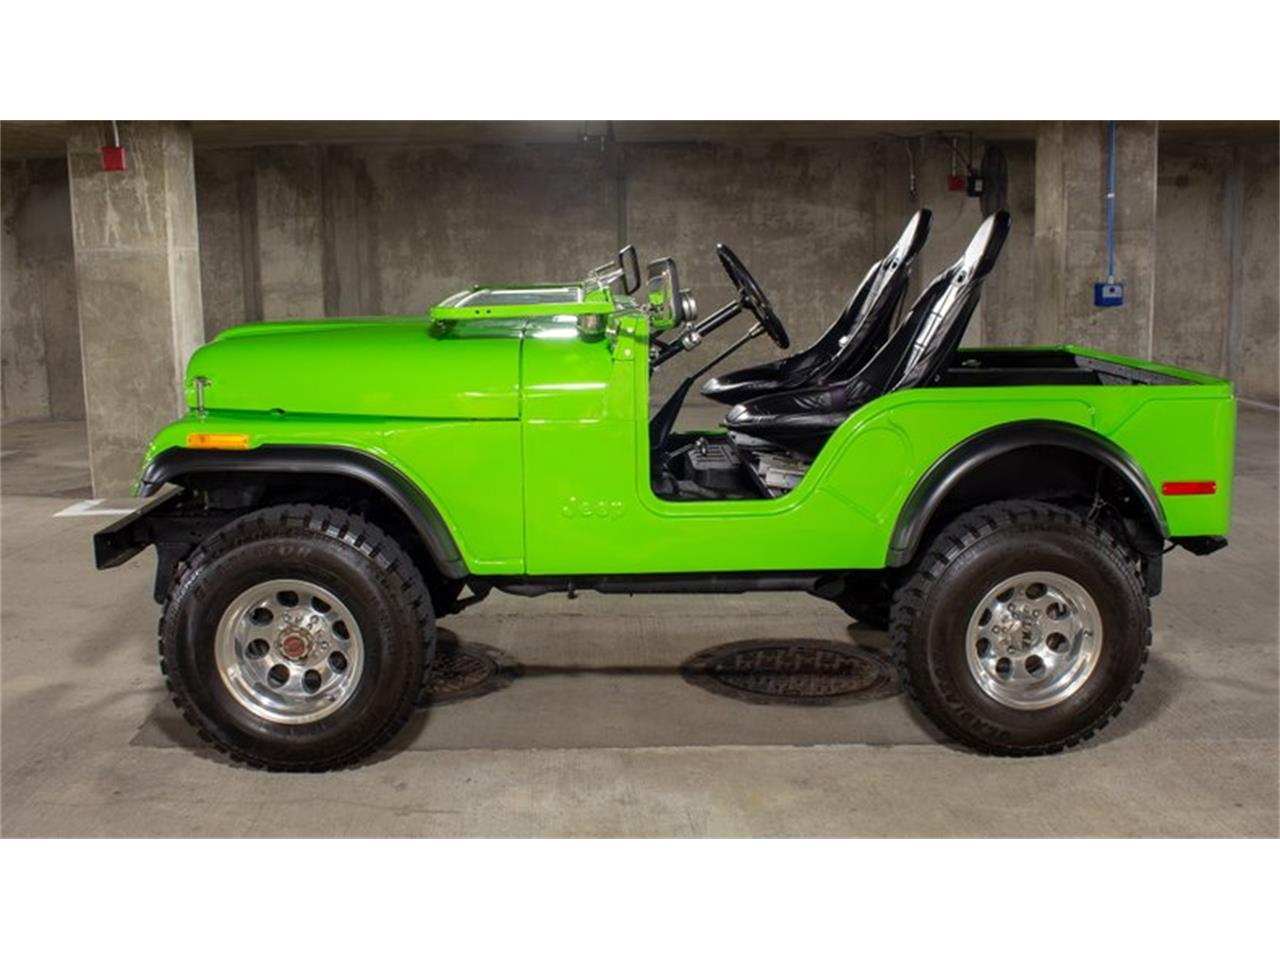 1974 Jeep Cj5 For Sale In Rockville Md Classiccarsbay Com